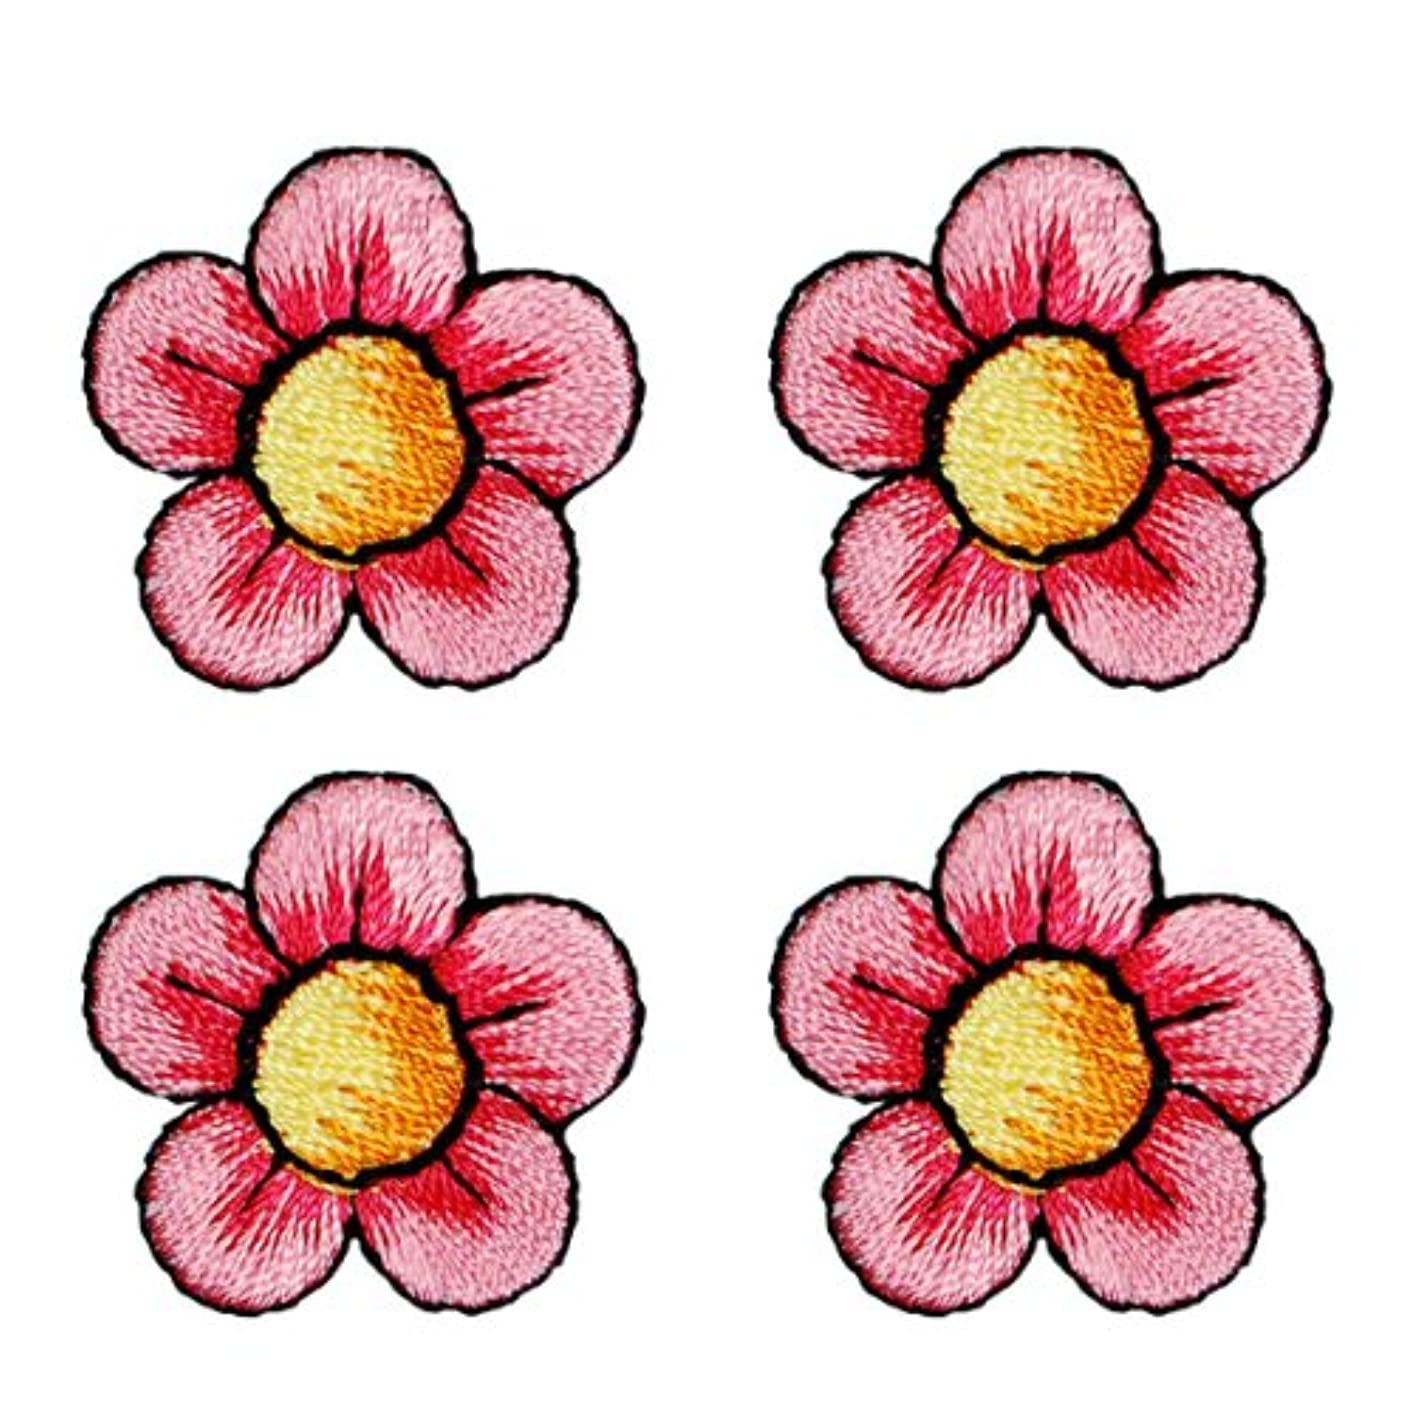 Expo BZP77587 Iron-on Embroidered Applique Patches, BaZooples Flower, 4-Pack